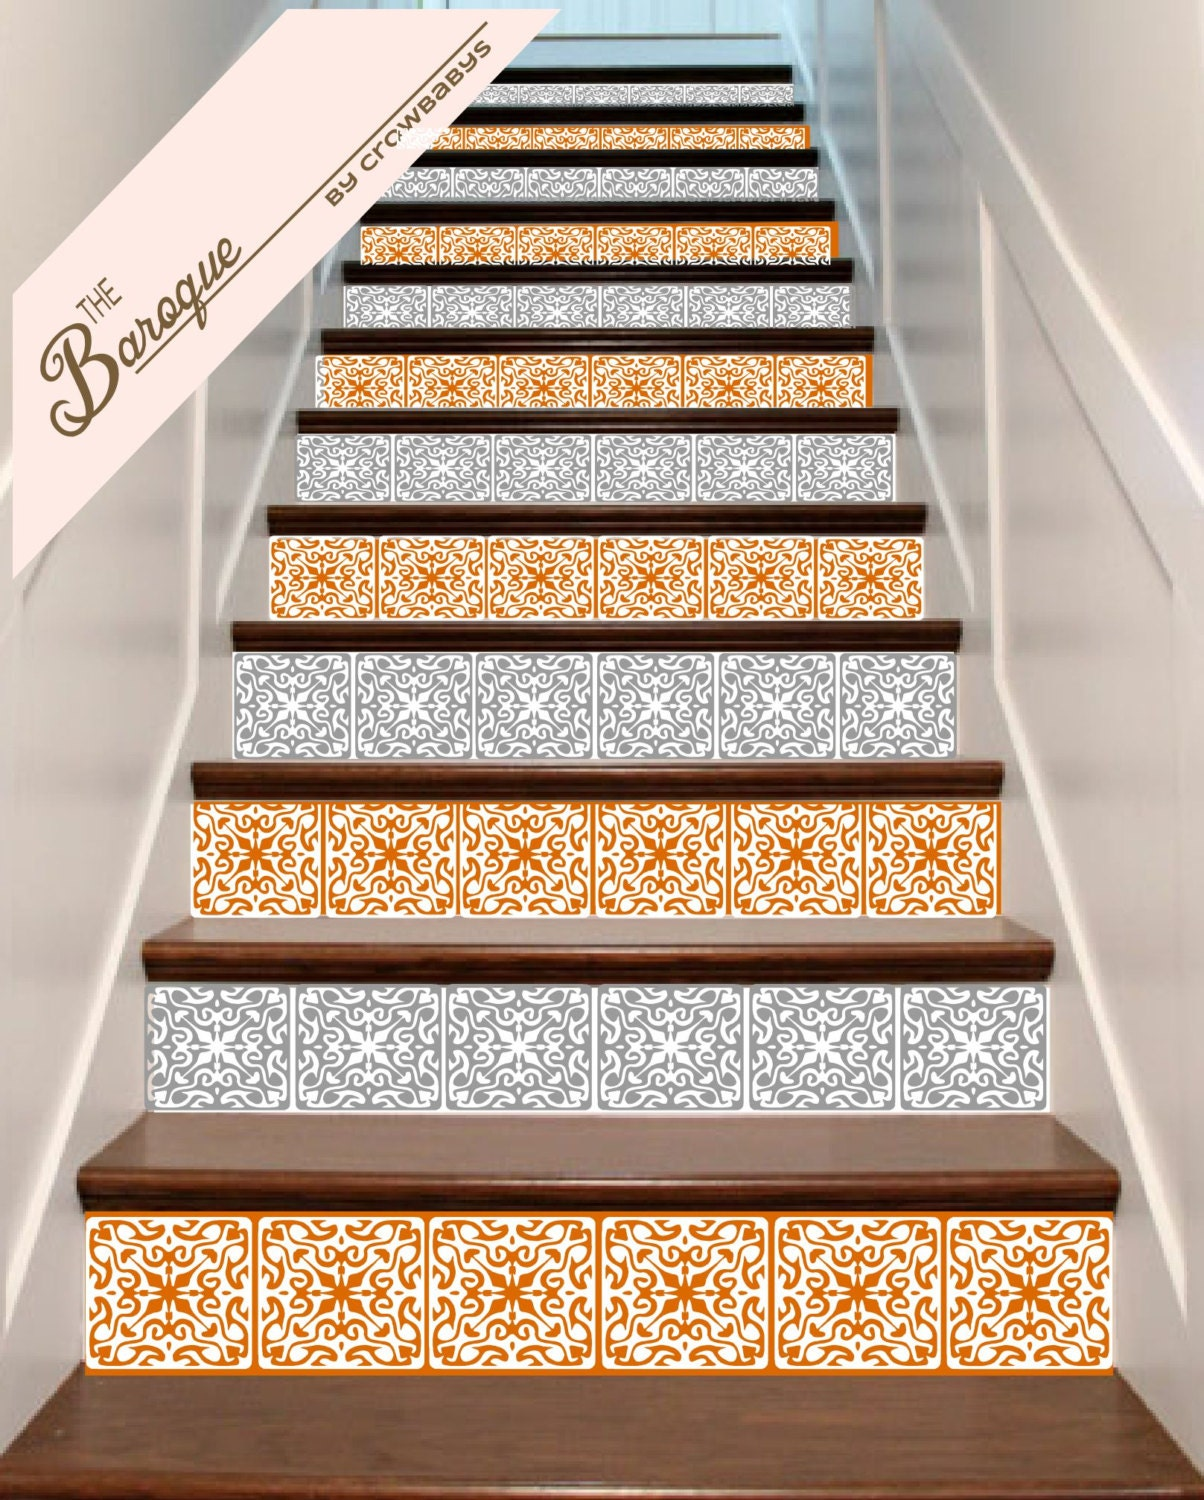 Ornate vinyl tile decals for stair risers order as by - Stickers contremarche escalier ...